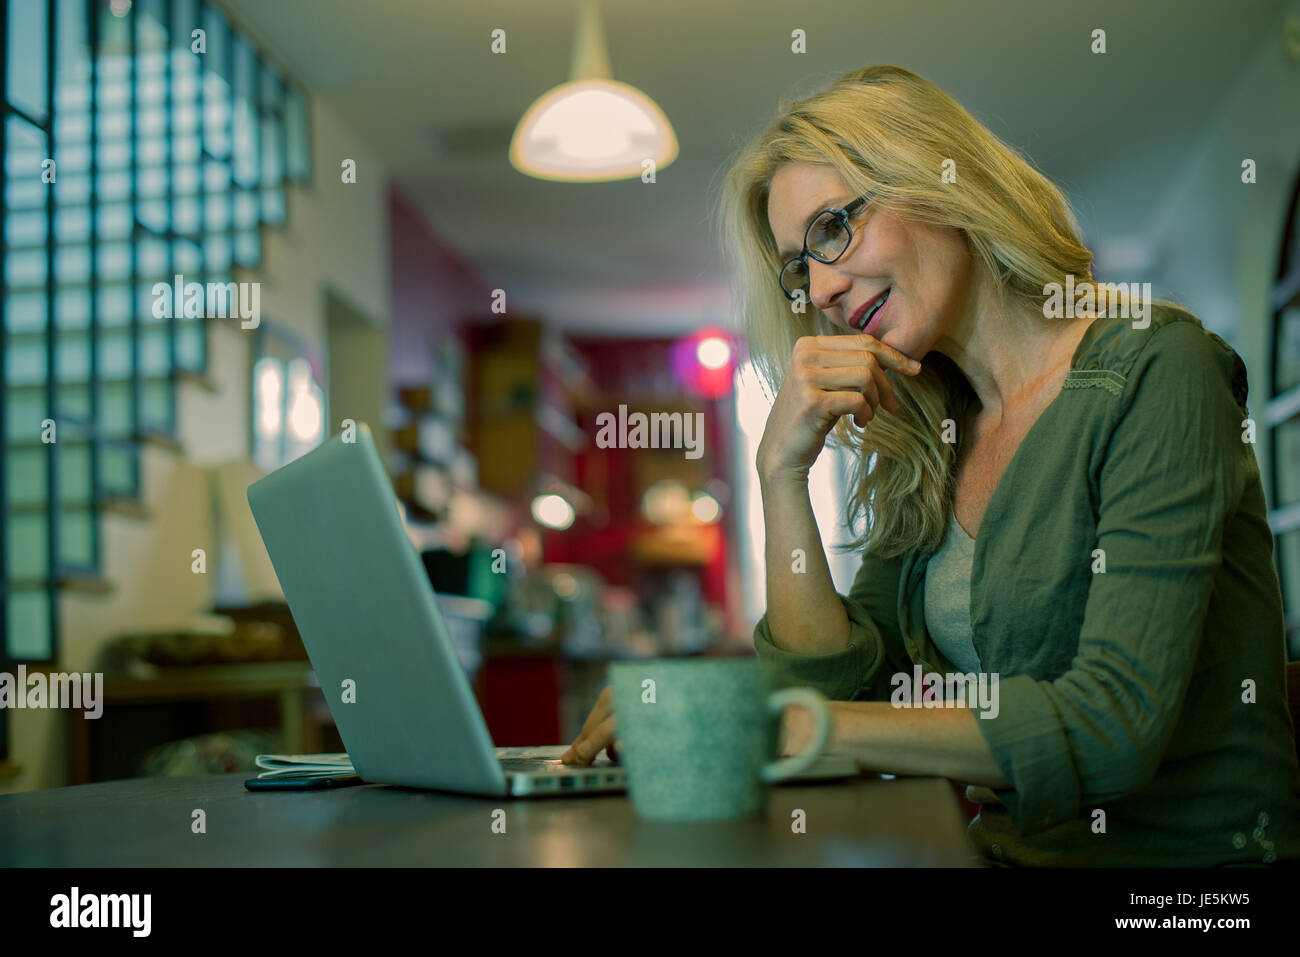 Woman using laptop computer at home - Stock Image